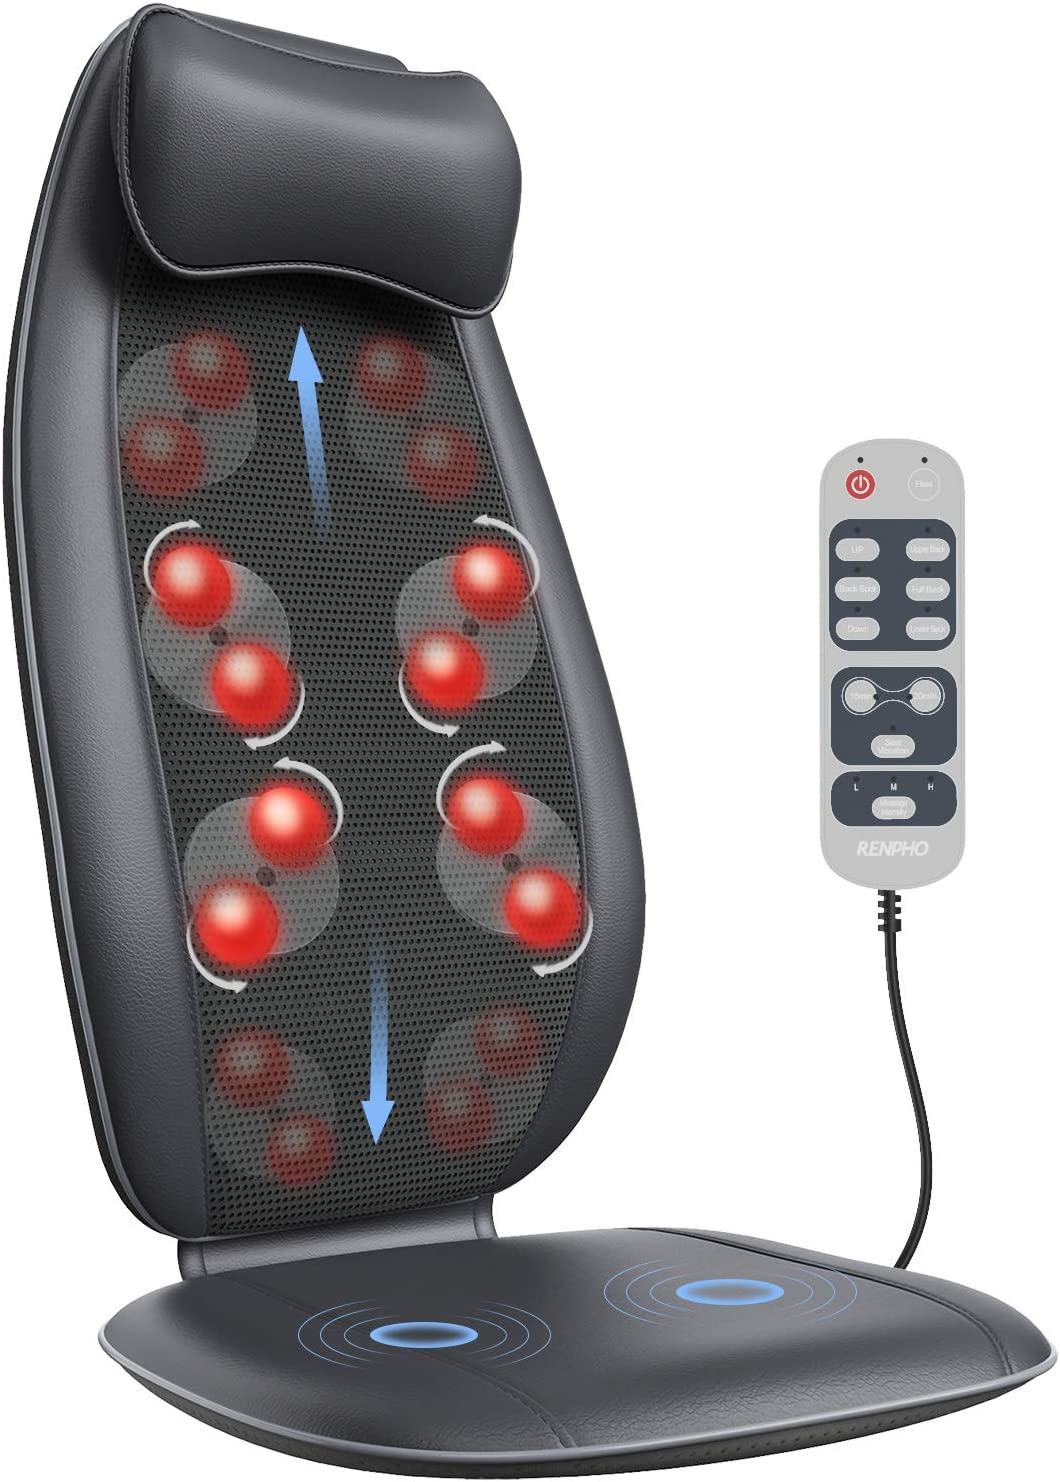 Back Massager, RENPHO S-Shaped Shiatsu Neck Massage Seat Cushion with Heat,Vibration, Full Back Deep Tissue Rolling Massage Chair Pad for Shoulder, Waist, Hips, Muscle, Pain Relief, Home/Office